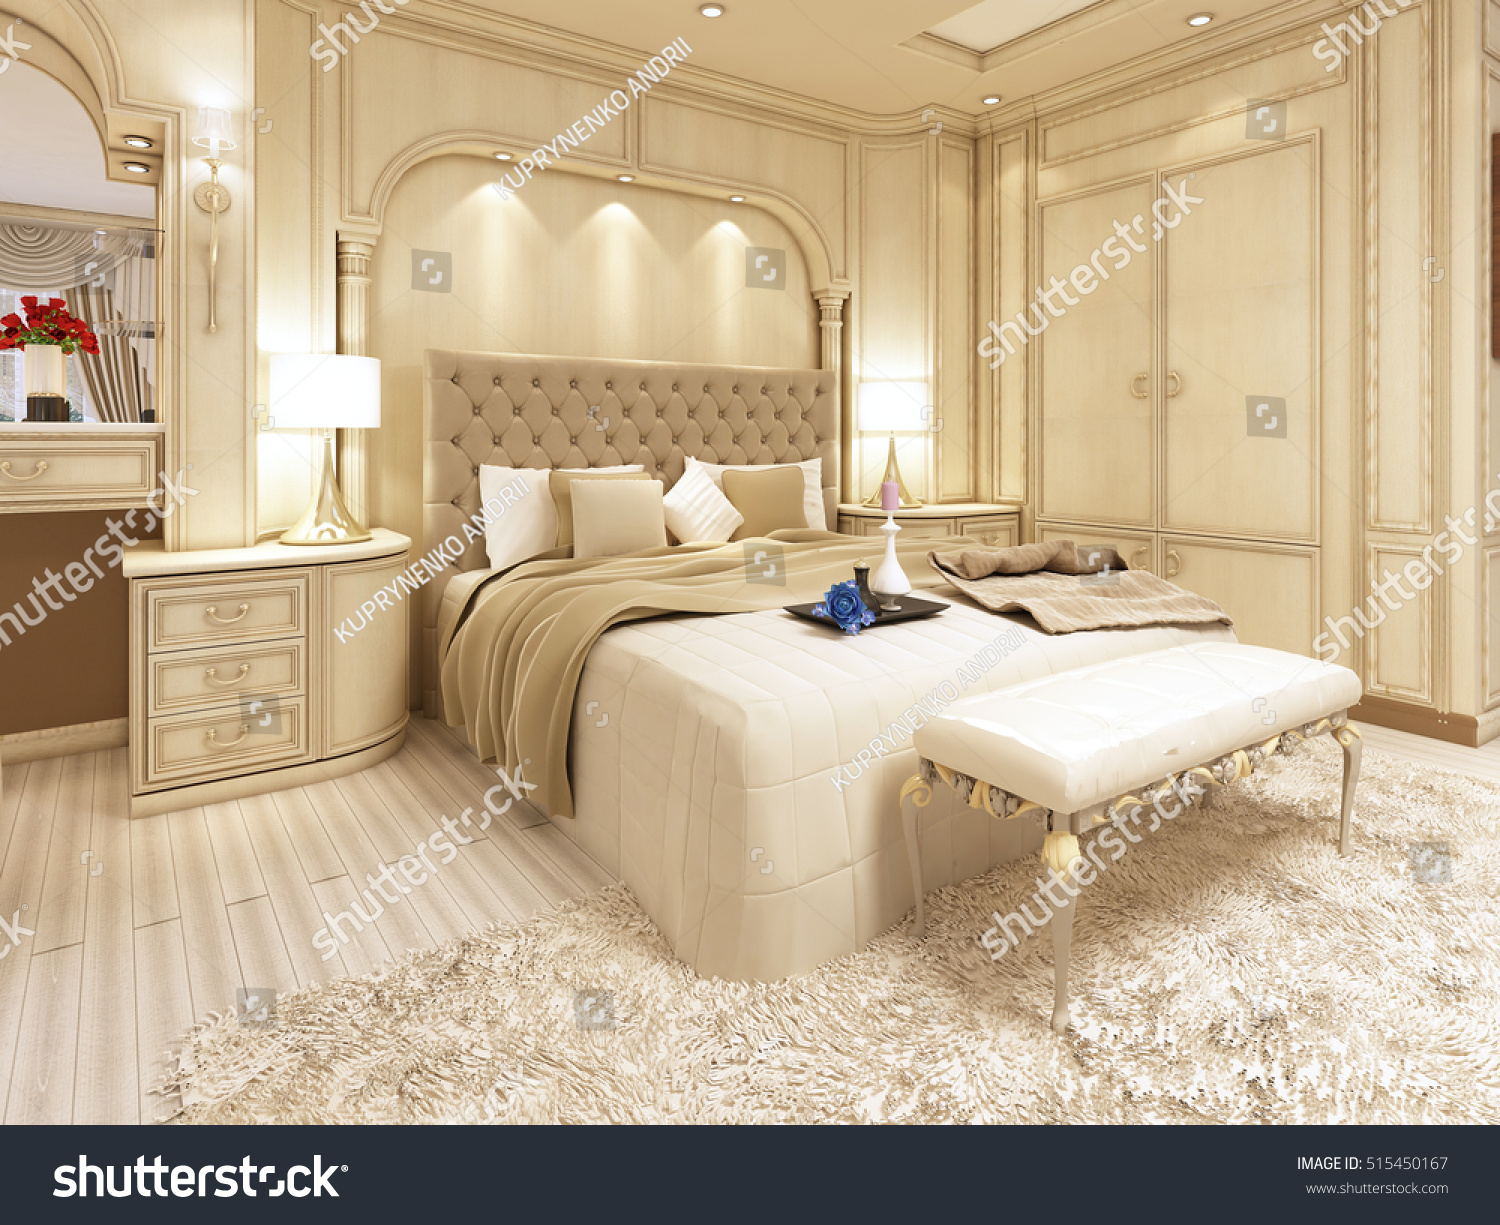 Dressing A Bed Luxury Bed Large Neoclassical Bedroom Decorative Stock